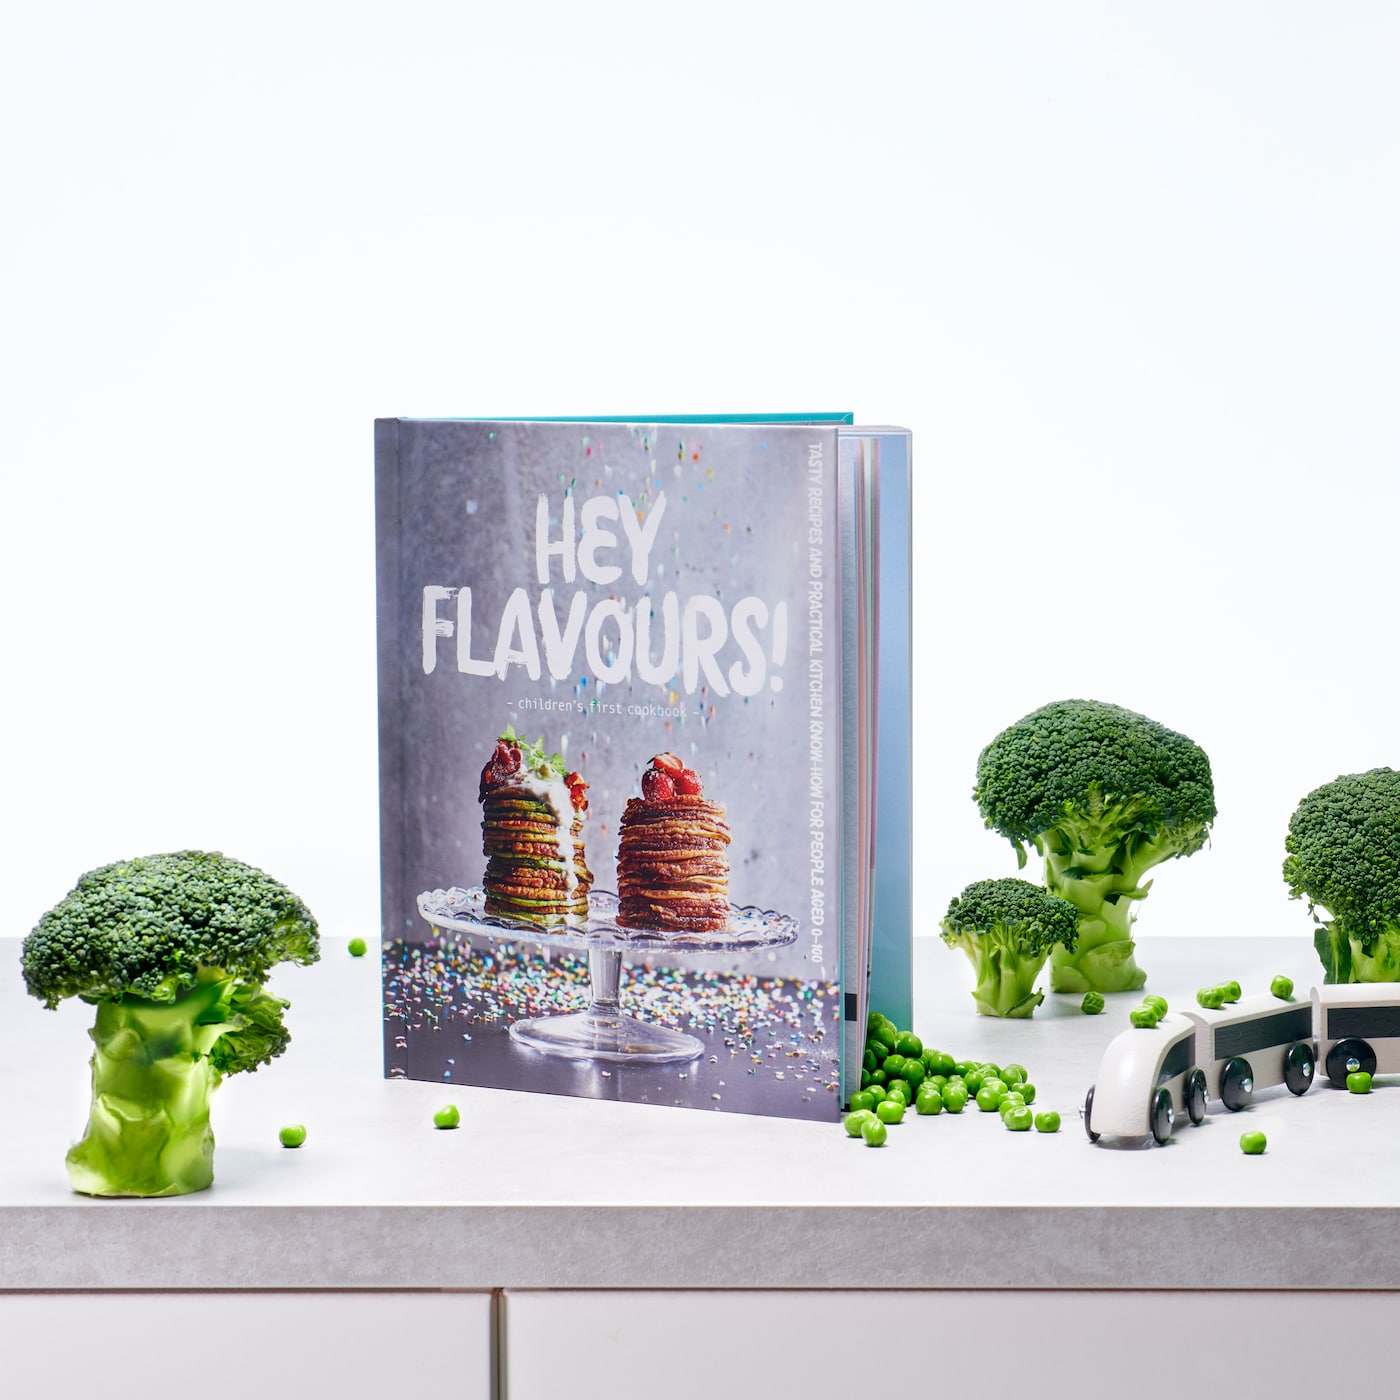 A MATVRÅ book Hey Flavours! with a cover featuring stacked pancakes on a cake stand with berries on top.